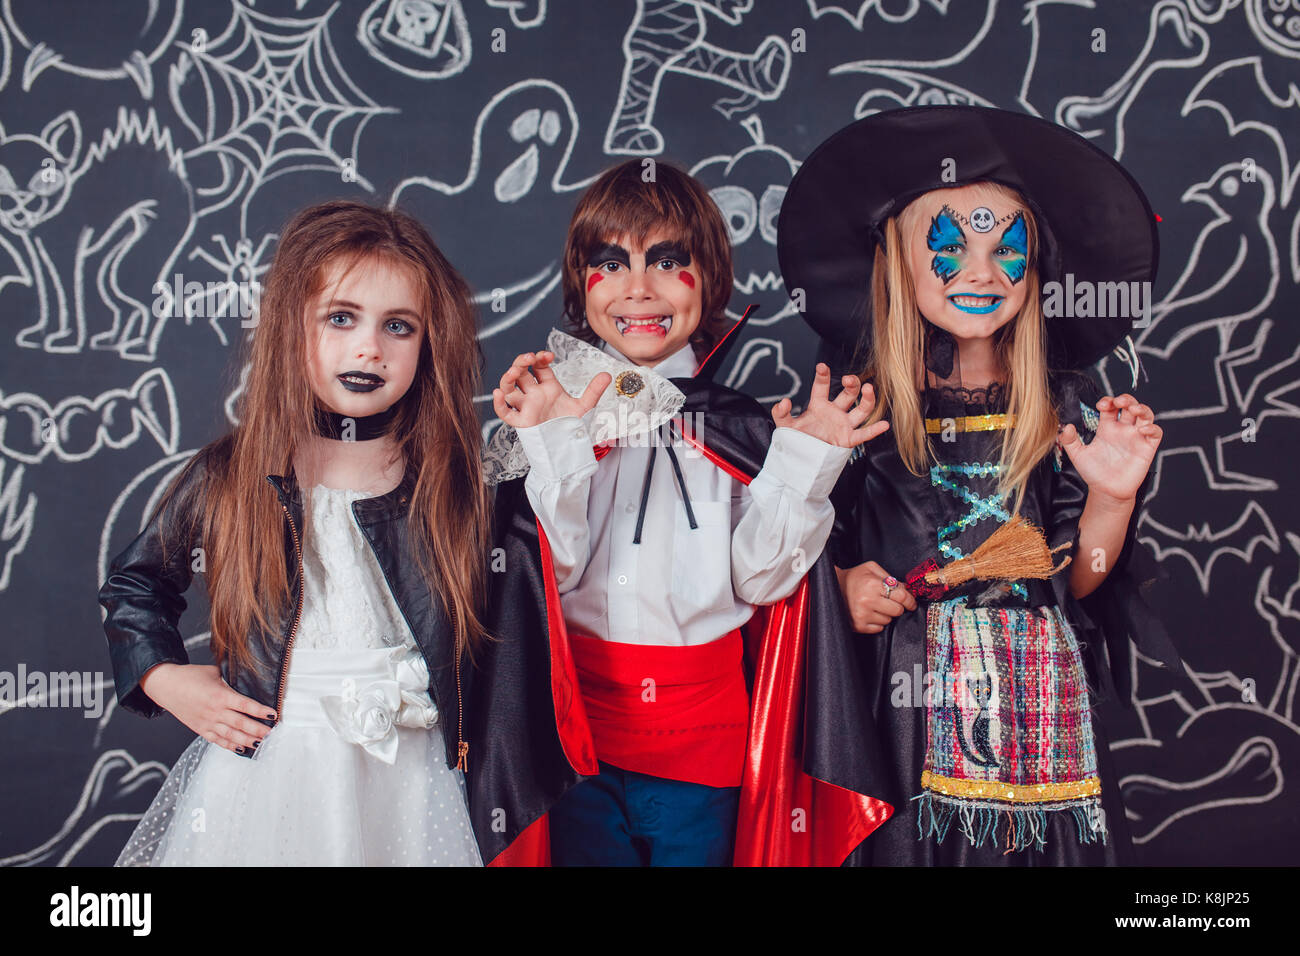 Children In Scary Halloween Costumes Stand Against A Wall With Stock Photo Alamy